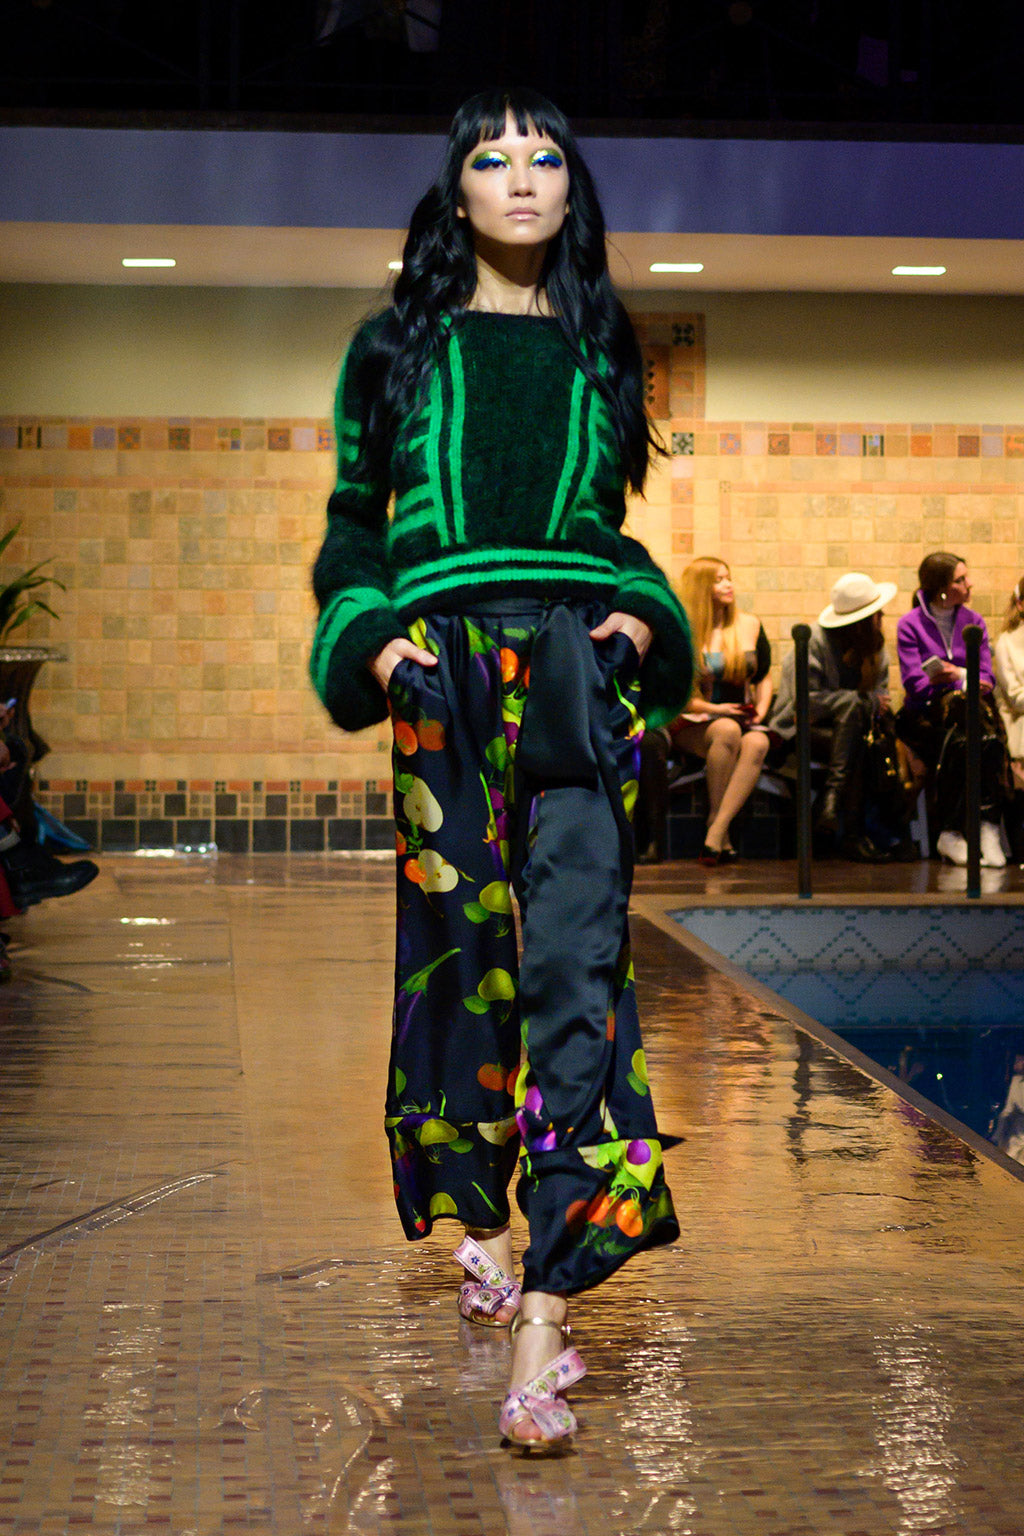 Cynthia Rowley Fall 2019 look 10 featuring a black and green abstract print sweater with long sleeves worn over a fruit printed flare pant